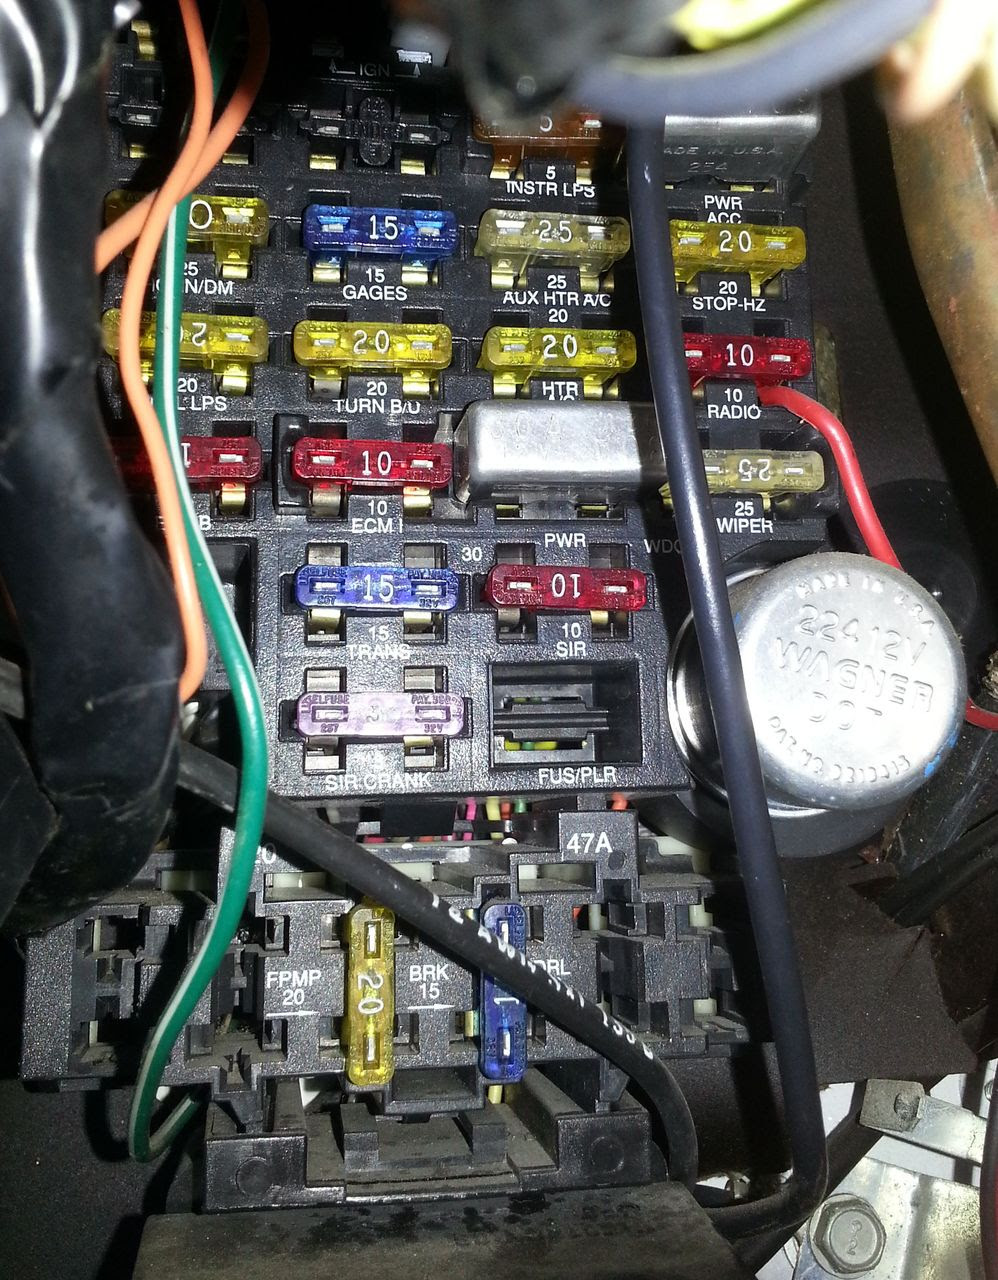 C2d2 95 Impala Ss Fuse Box Wiring Resources